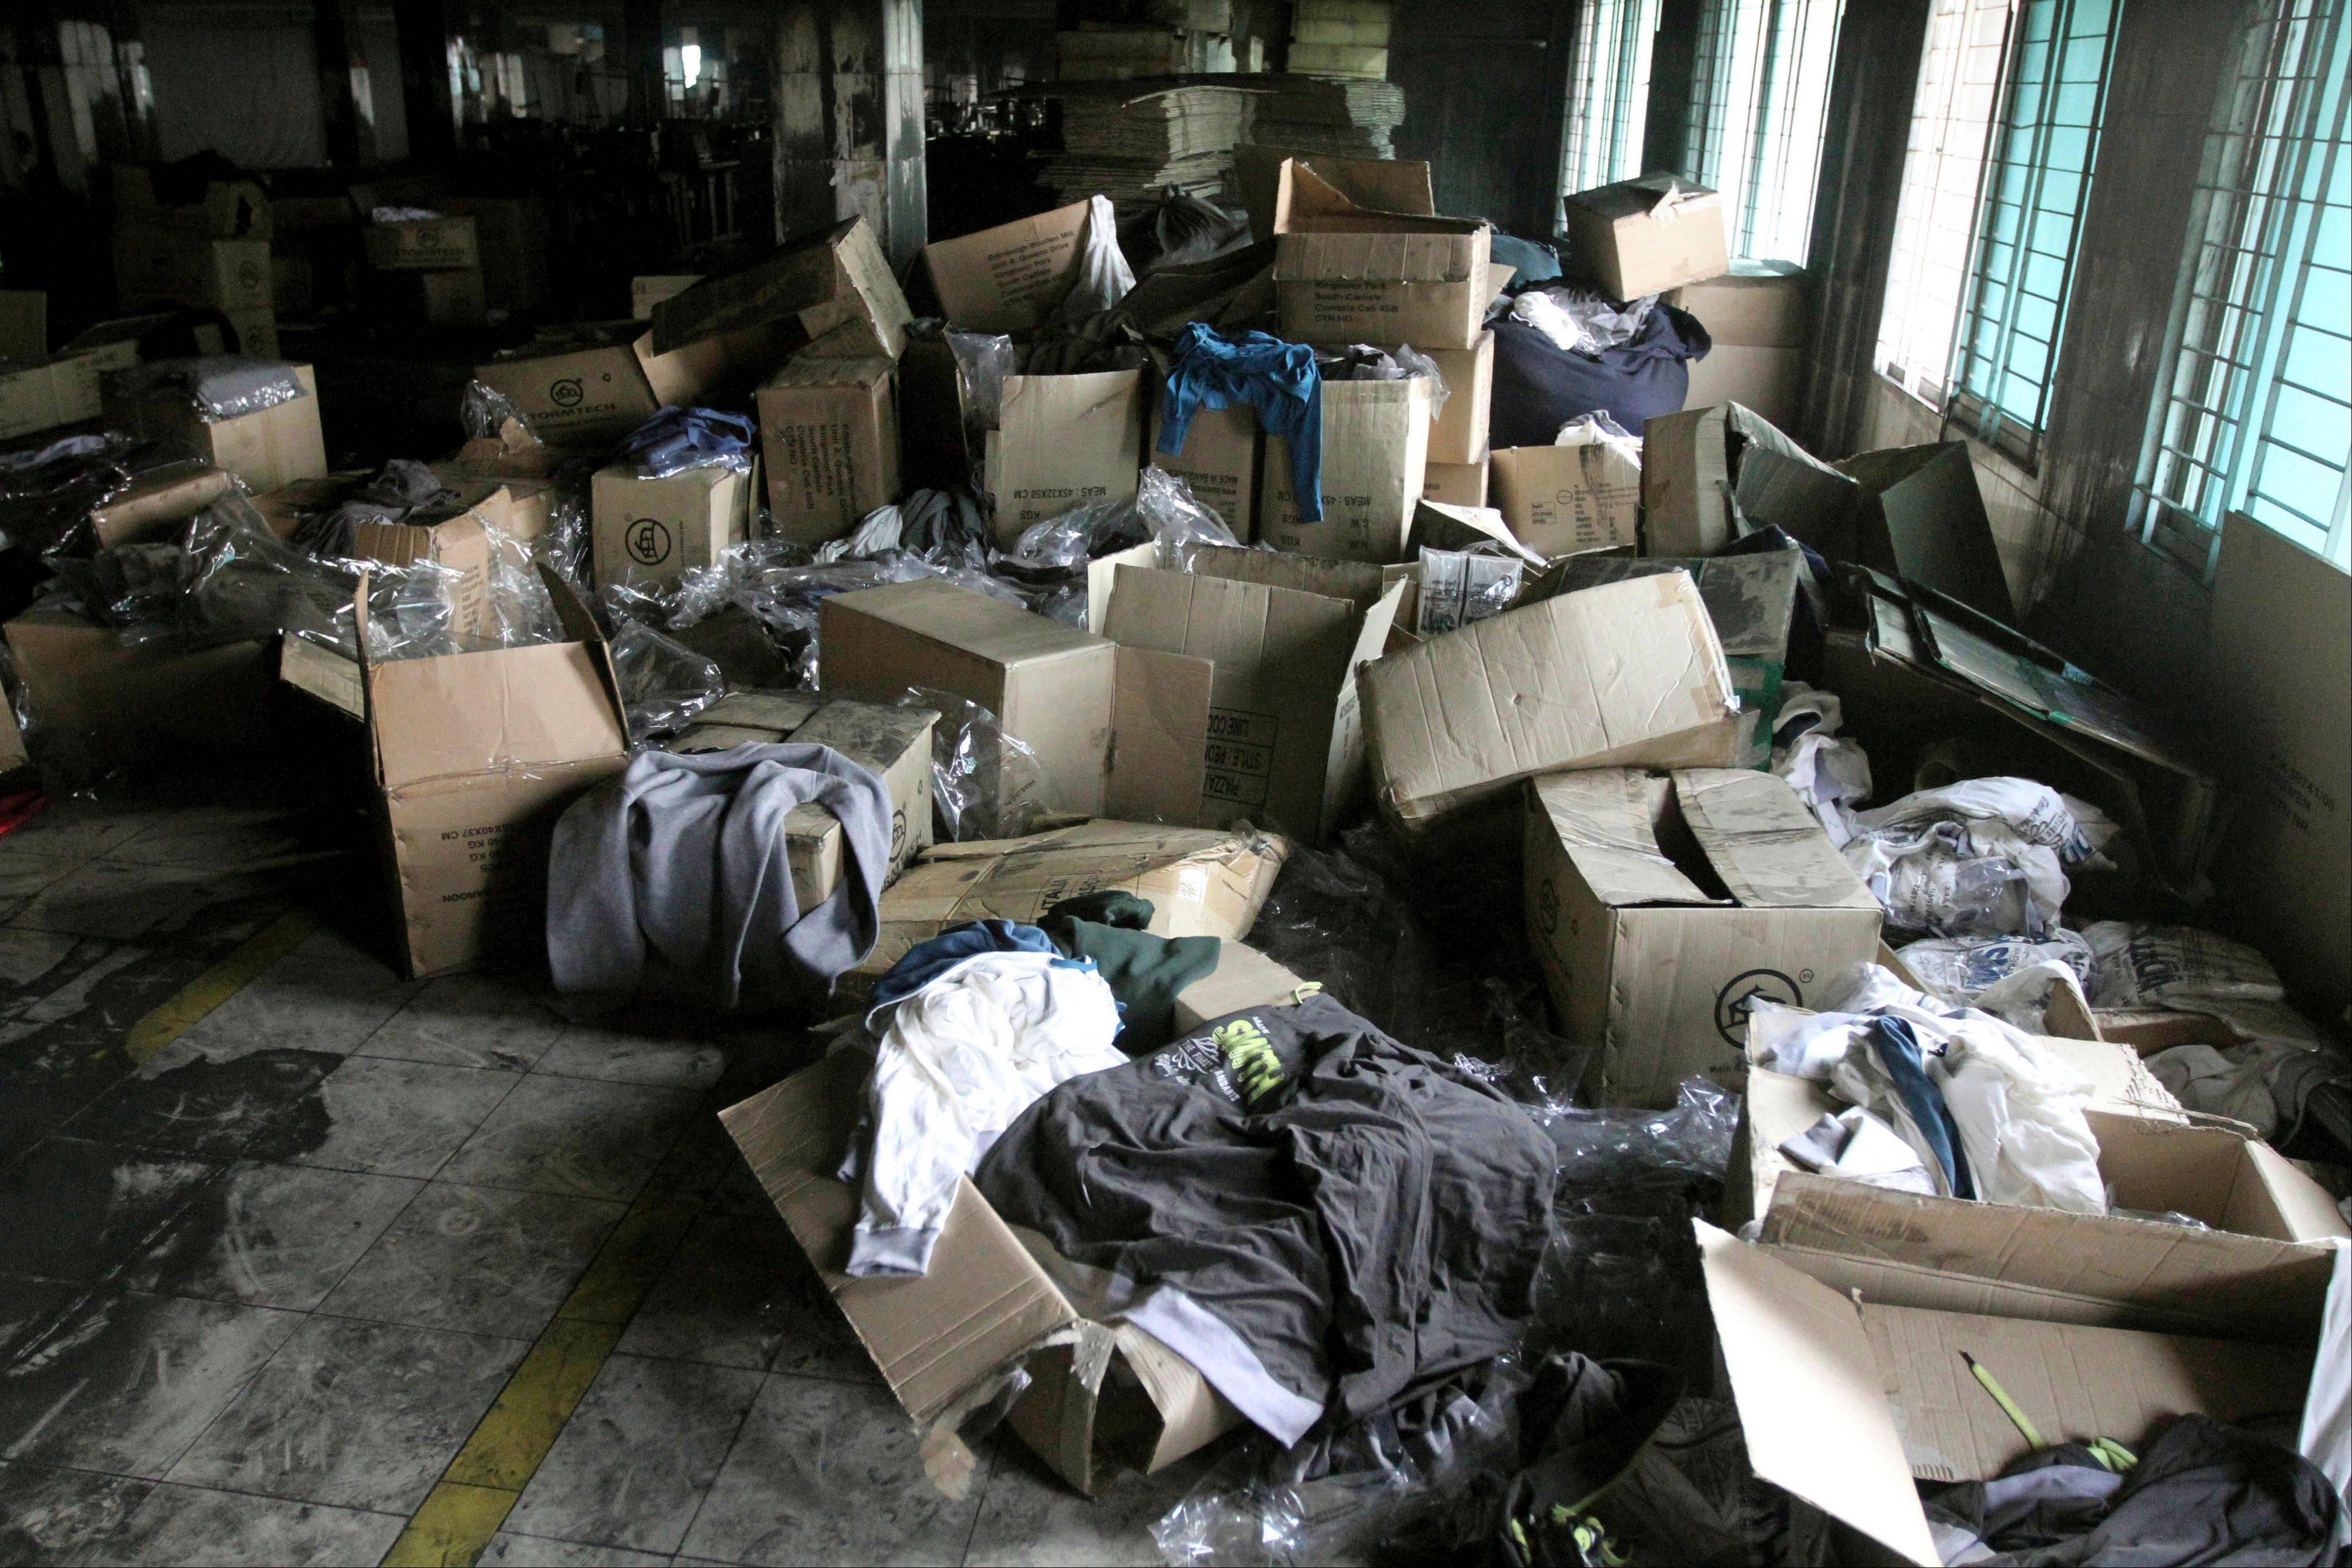 Boxes of garments lay near equipment charred in the fire that killed 112 workers Saturday at the Tazreen Fashions Ltd. factory,on the outskirts of Dhaha, Bangladesh, Wednesday.